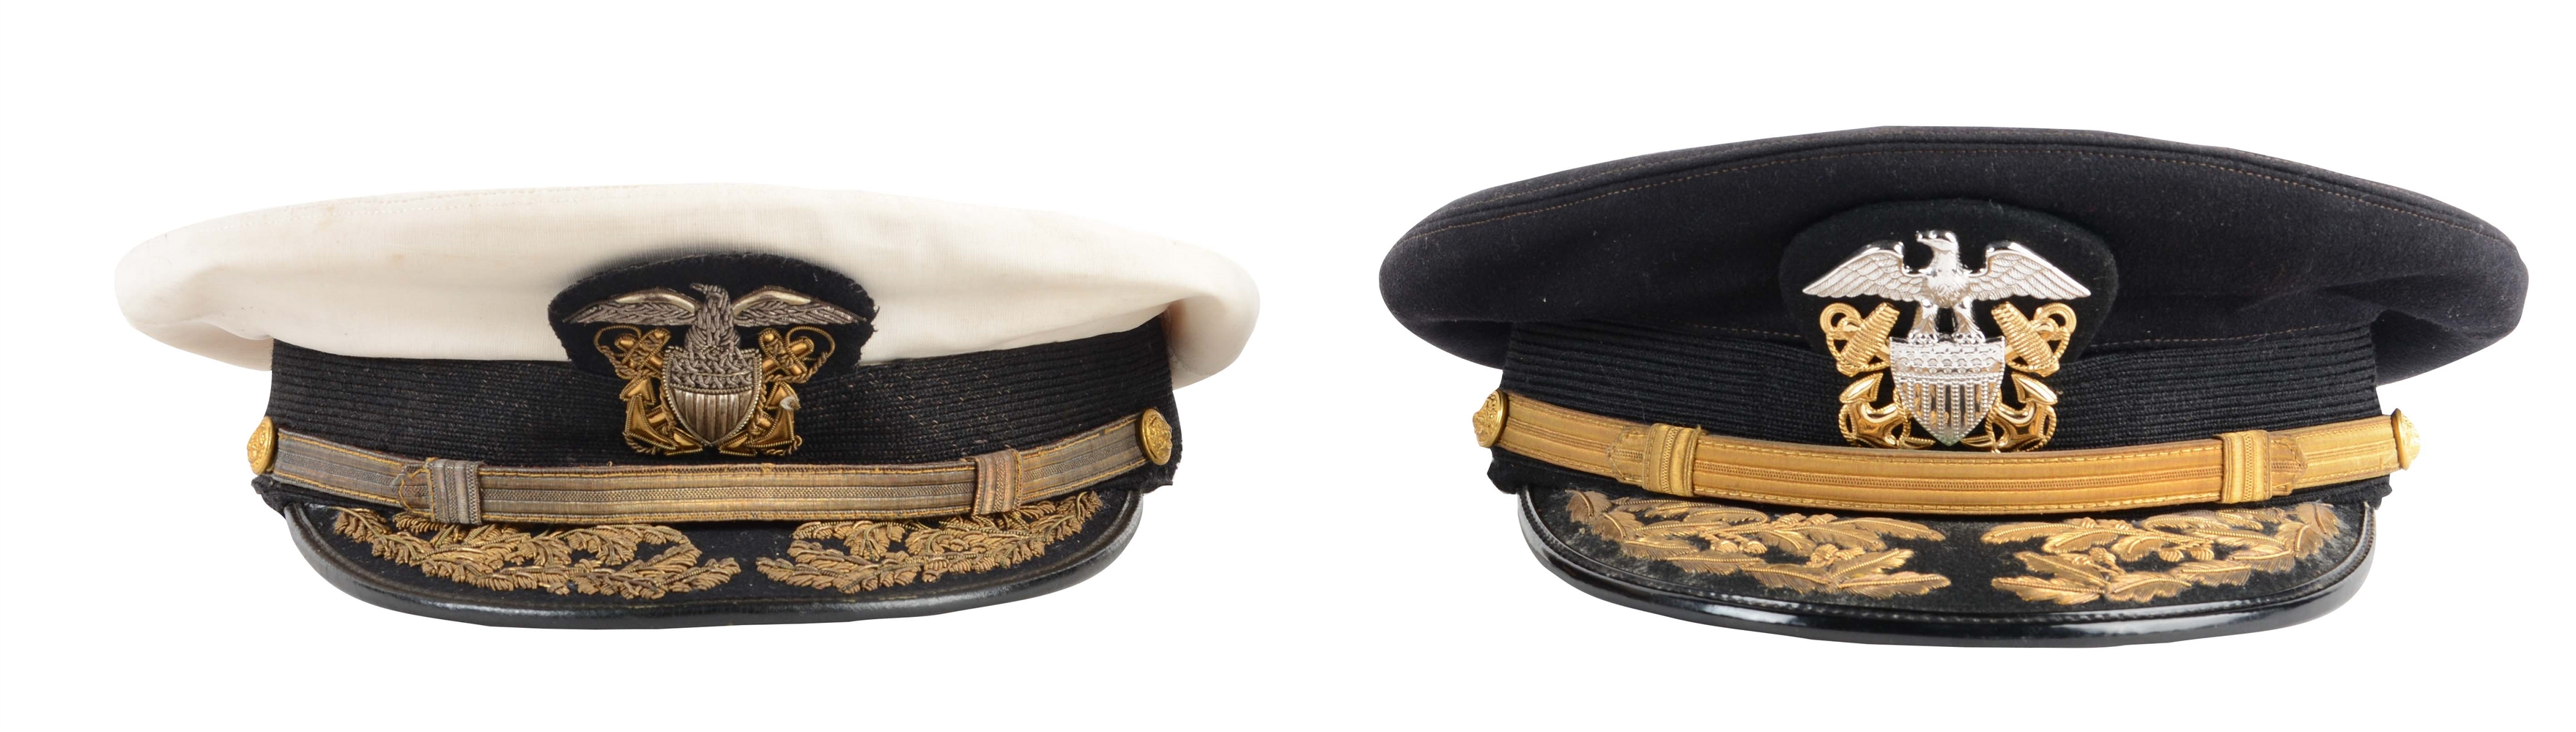 Lot Of 2: U.S. Navy Admirals Caps Worn By Admiral Paul Pihl & Admiral Henry Eccles.